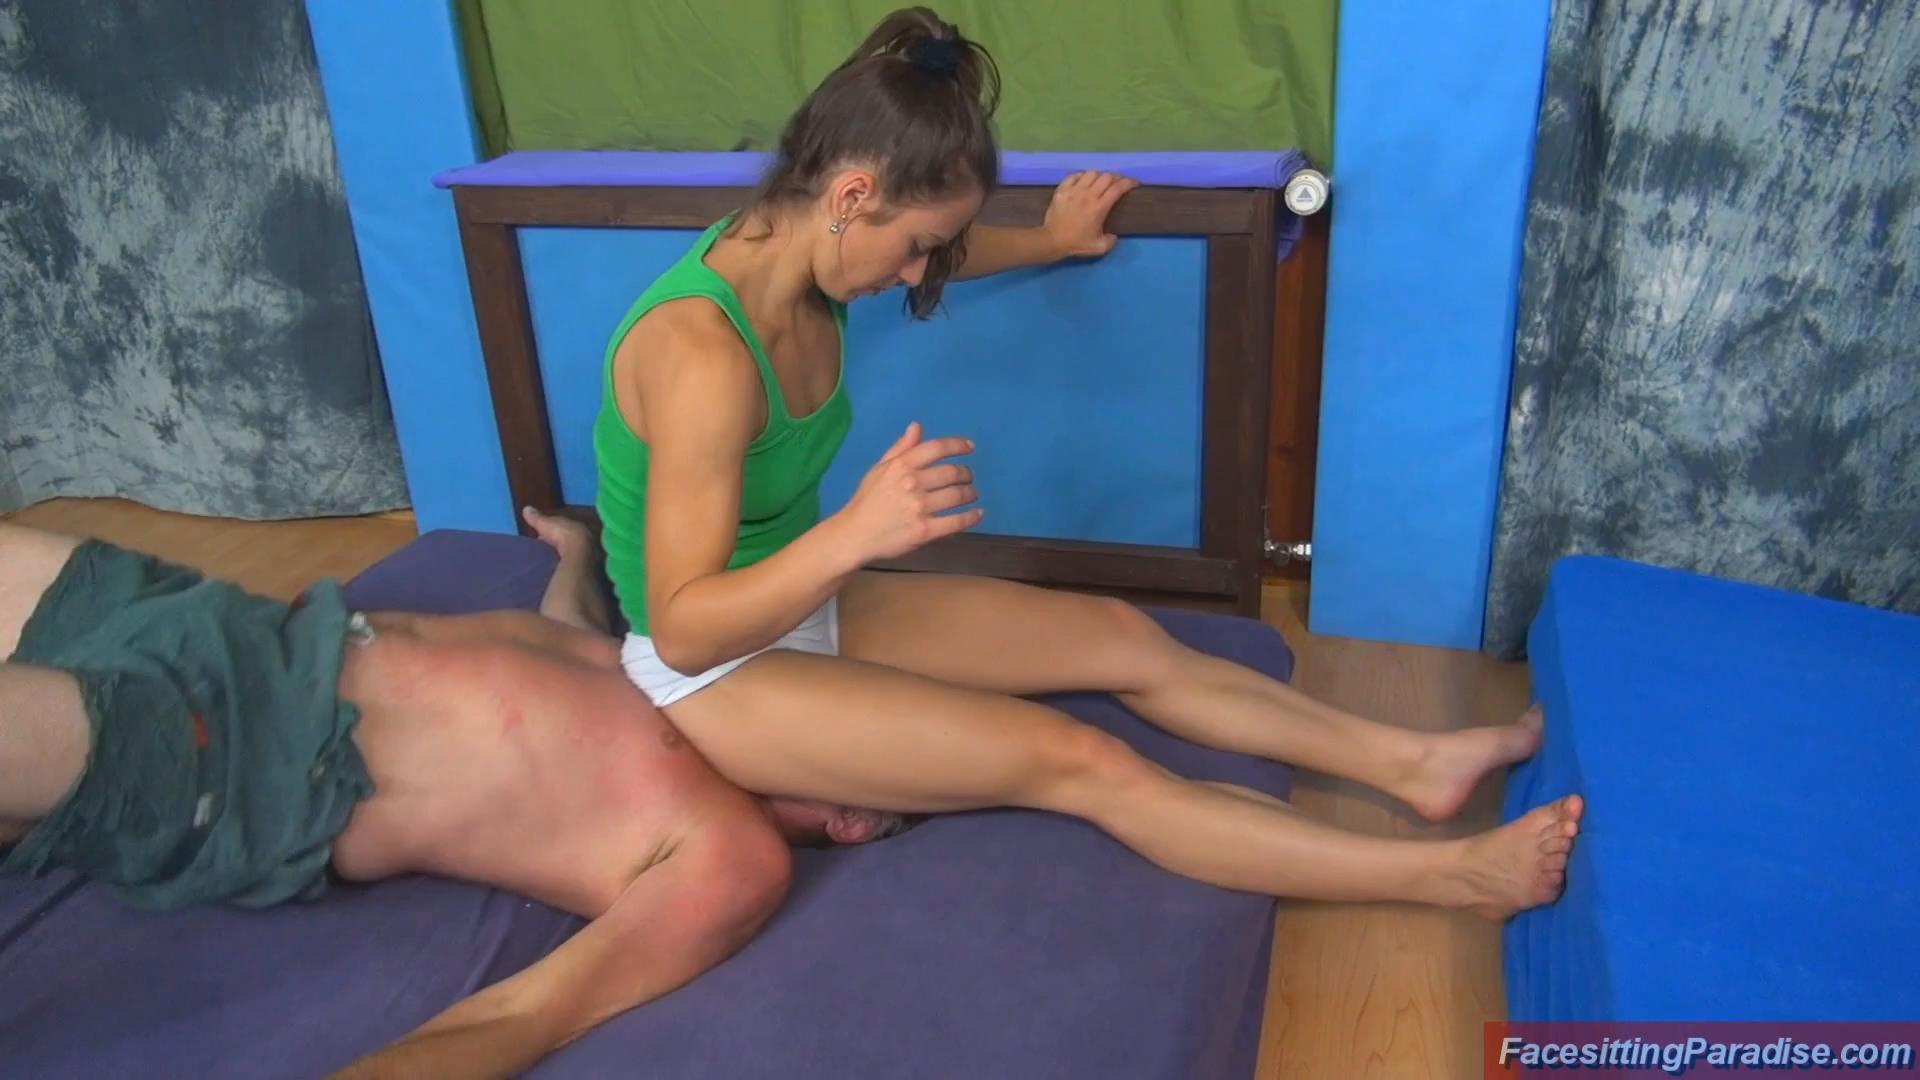 Miss Jul In Scene: Fighting and facesitting fun - FACESITTING-PARADISE - FULL HD/1080p/MP4